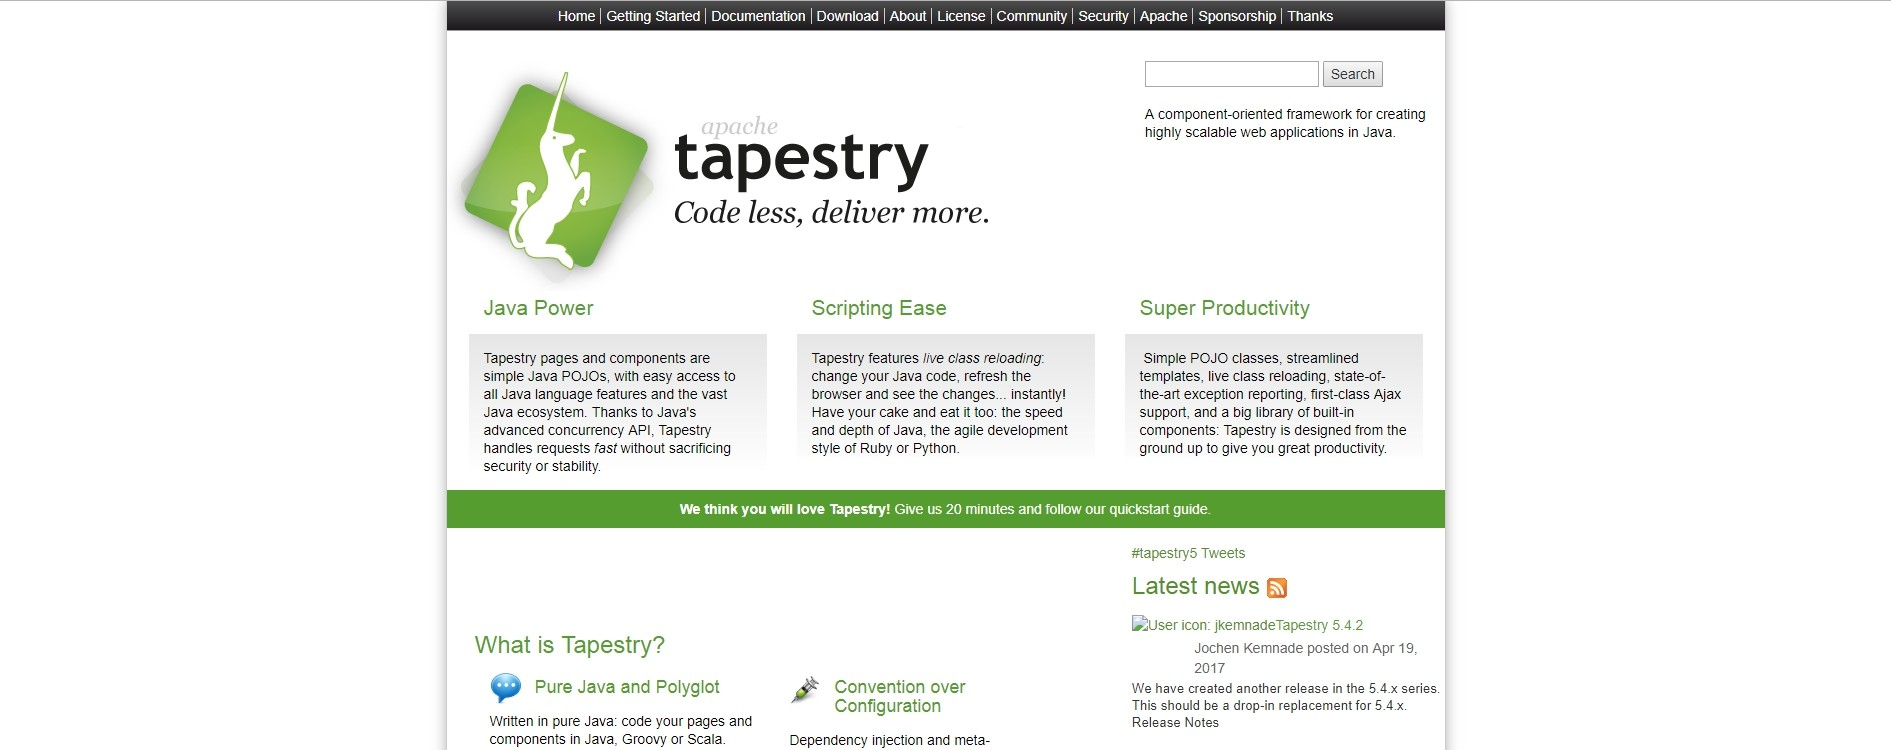 Apache Tapestry Home Page